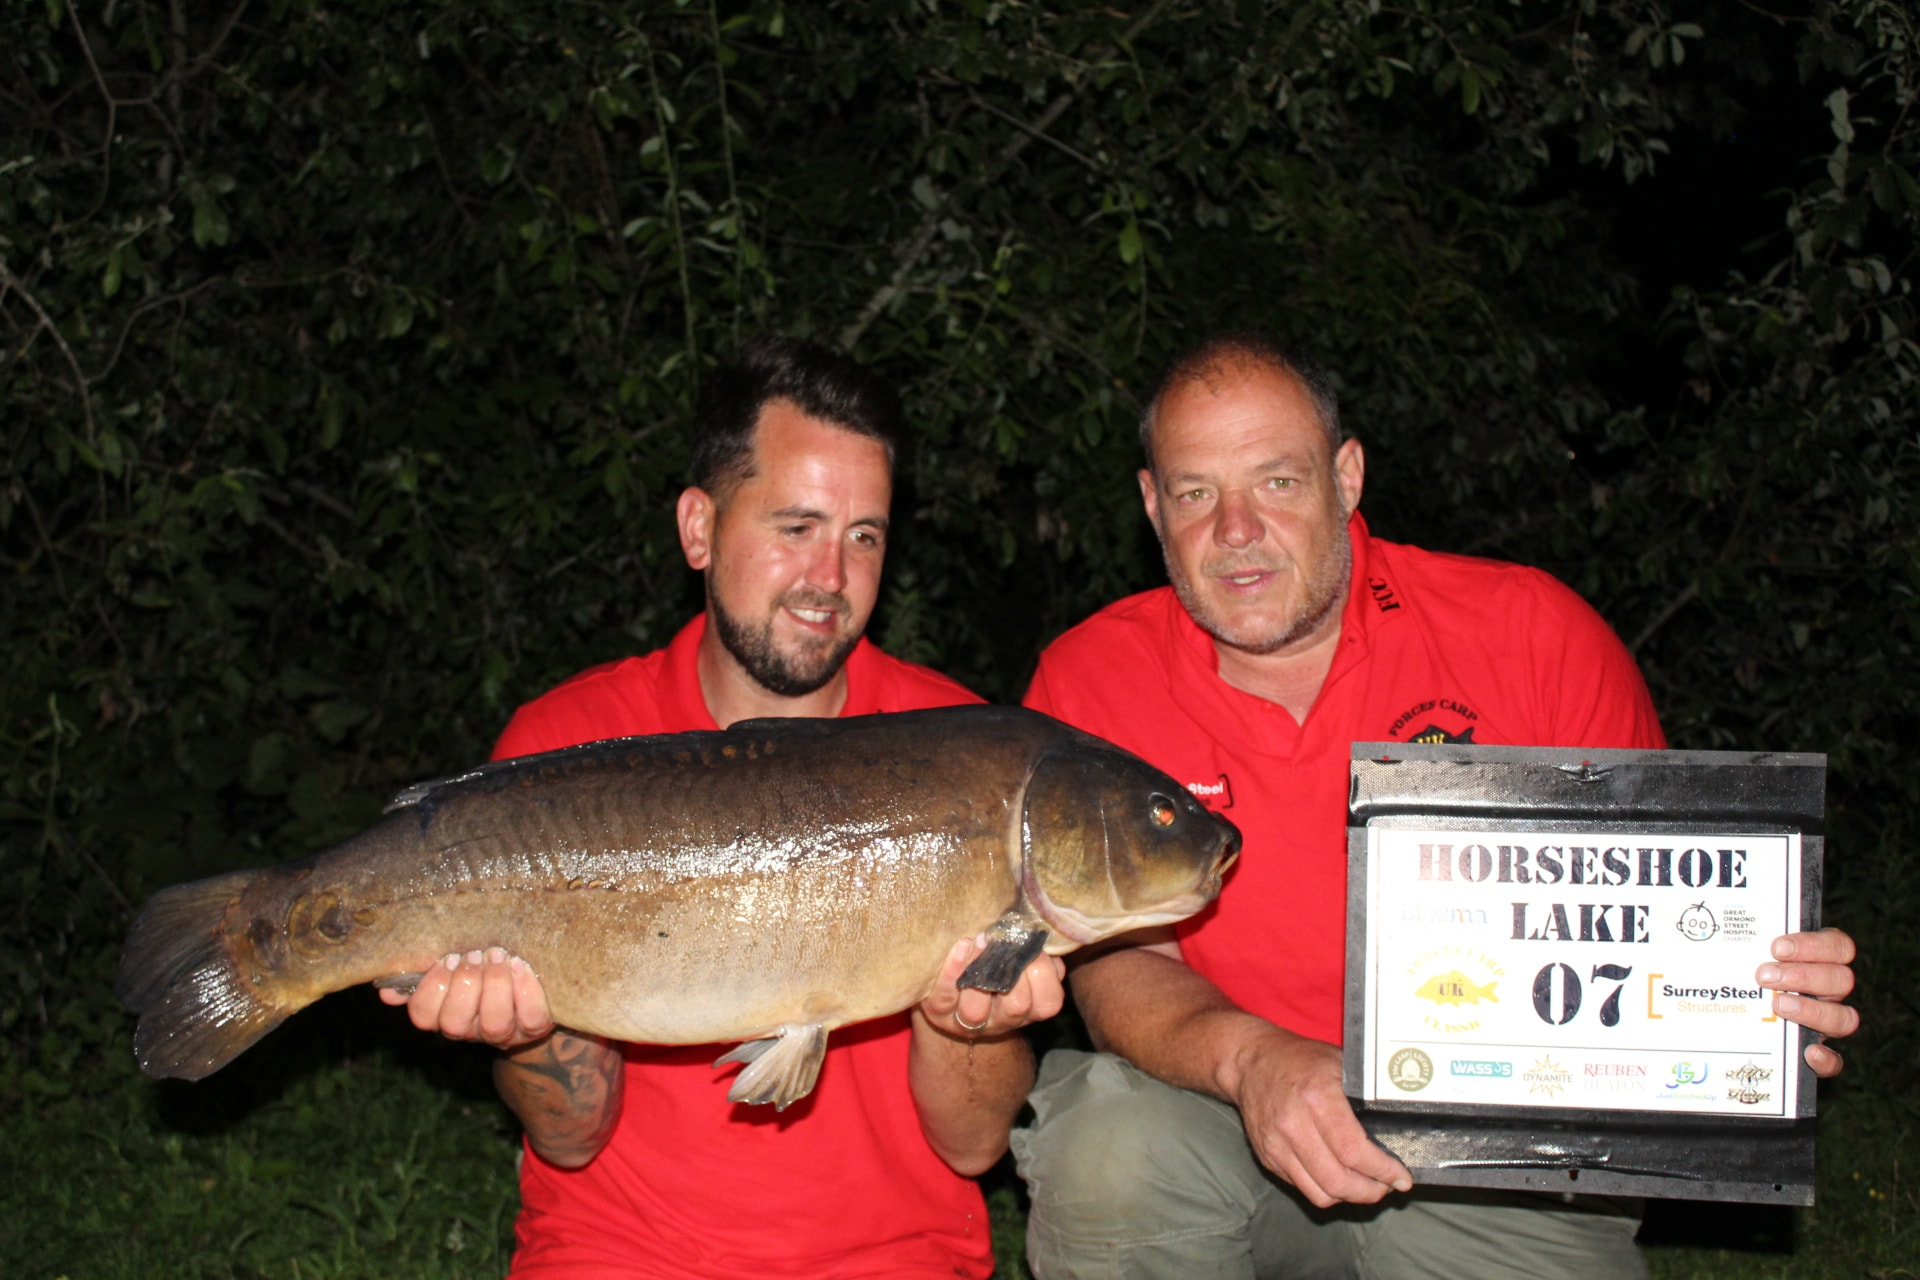 Peg 7 - Jon again with the biggest mirro